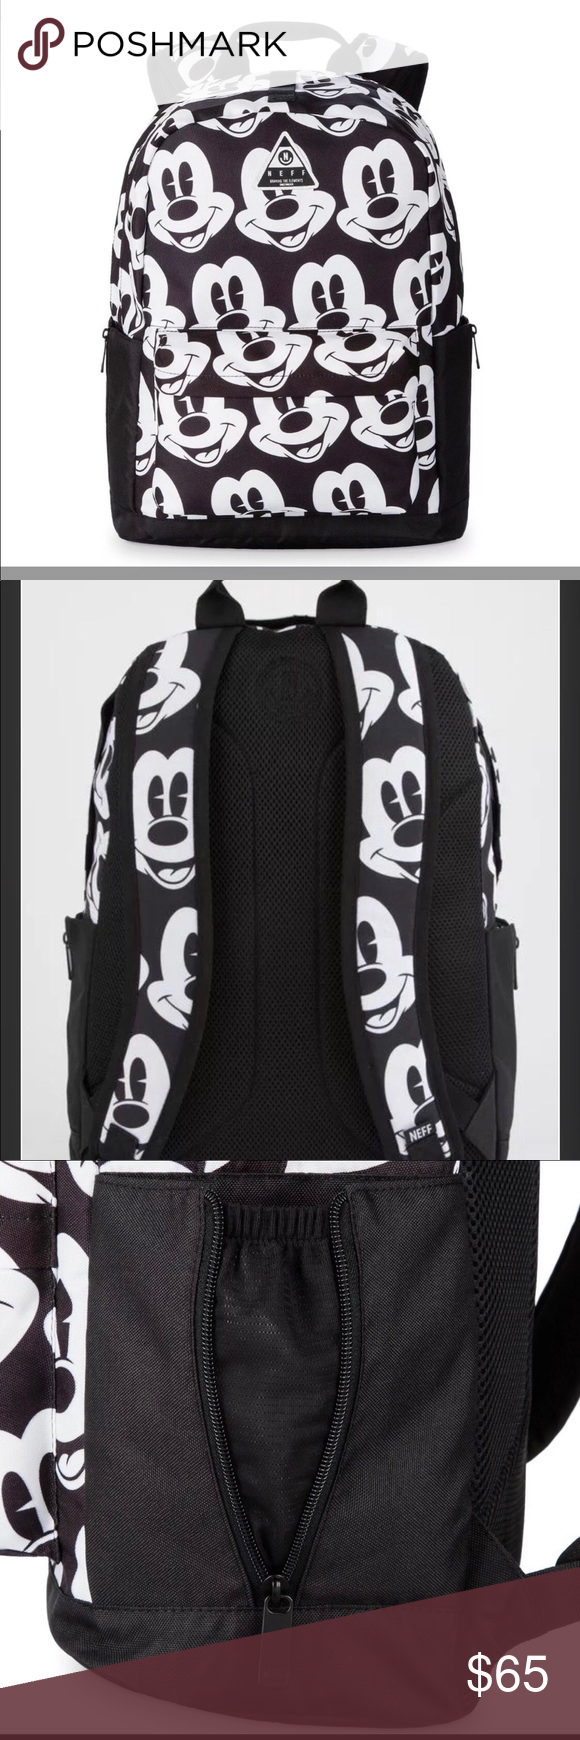 46f155149d1 Disney Neff Mickey Mouse Backpack Brand new Neff Disney Mickey Mouse  Backpack. Hard to find